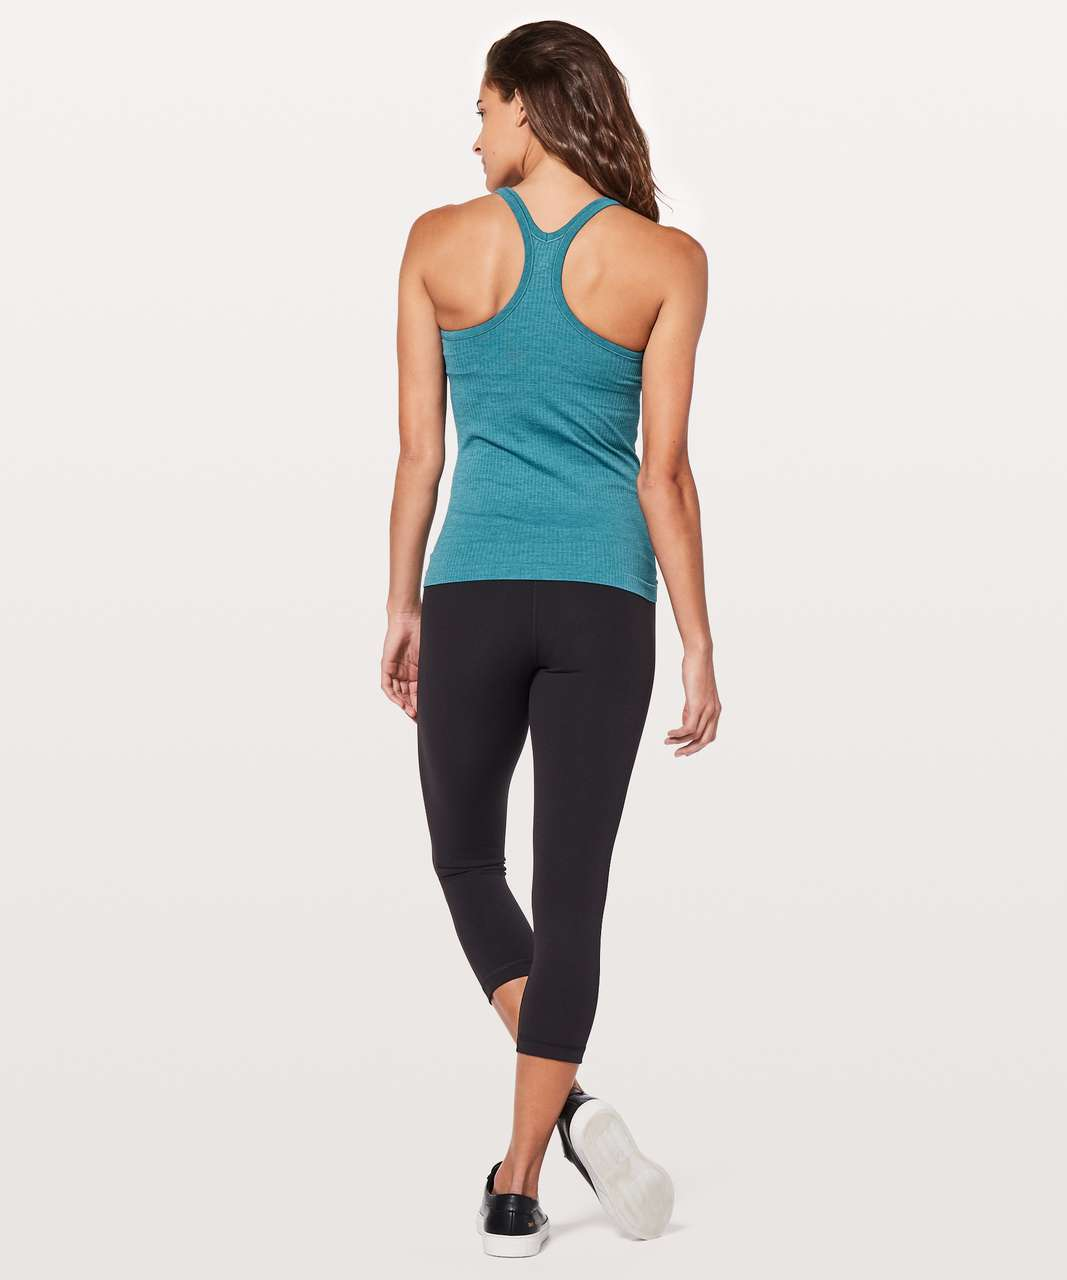 Lululemon Ebb To Street Tank II - Pacific Teal